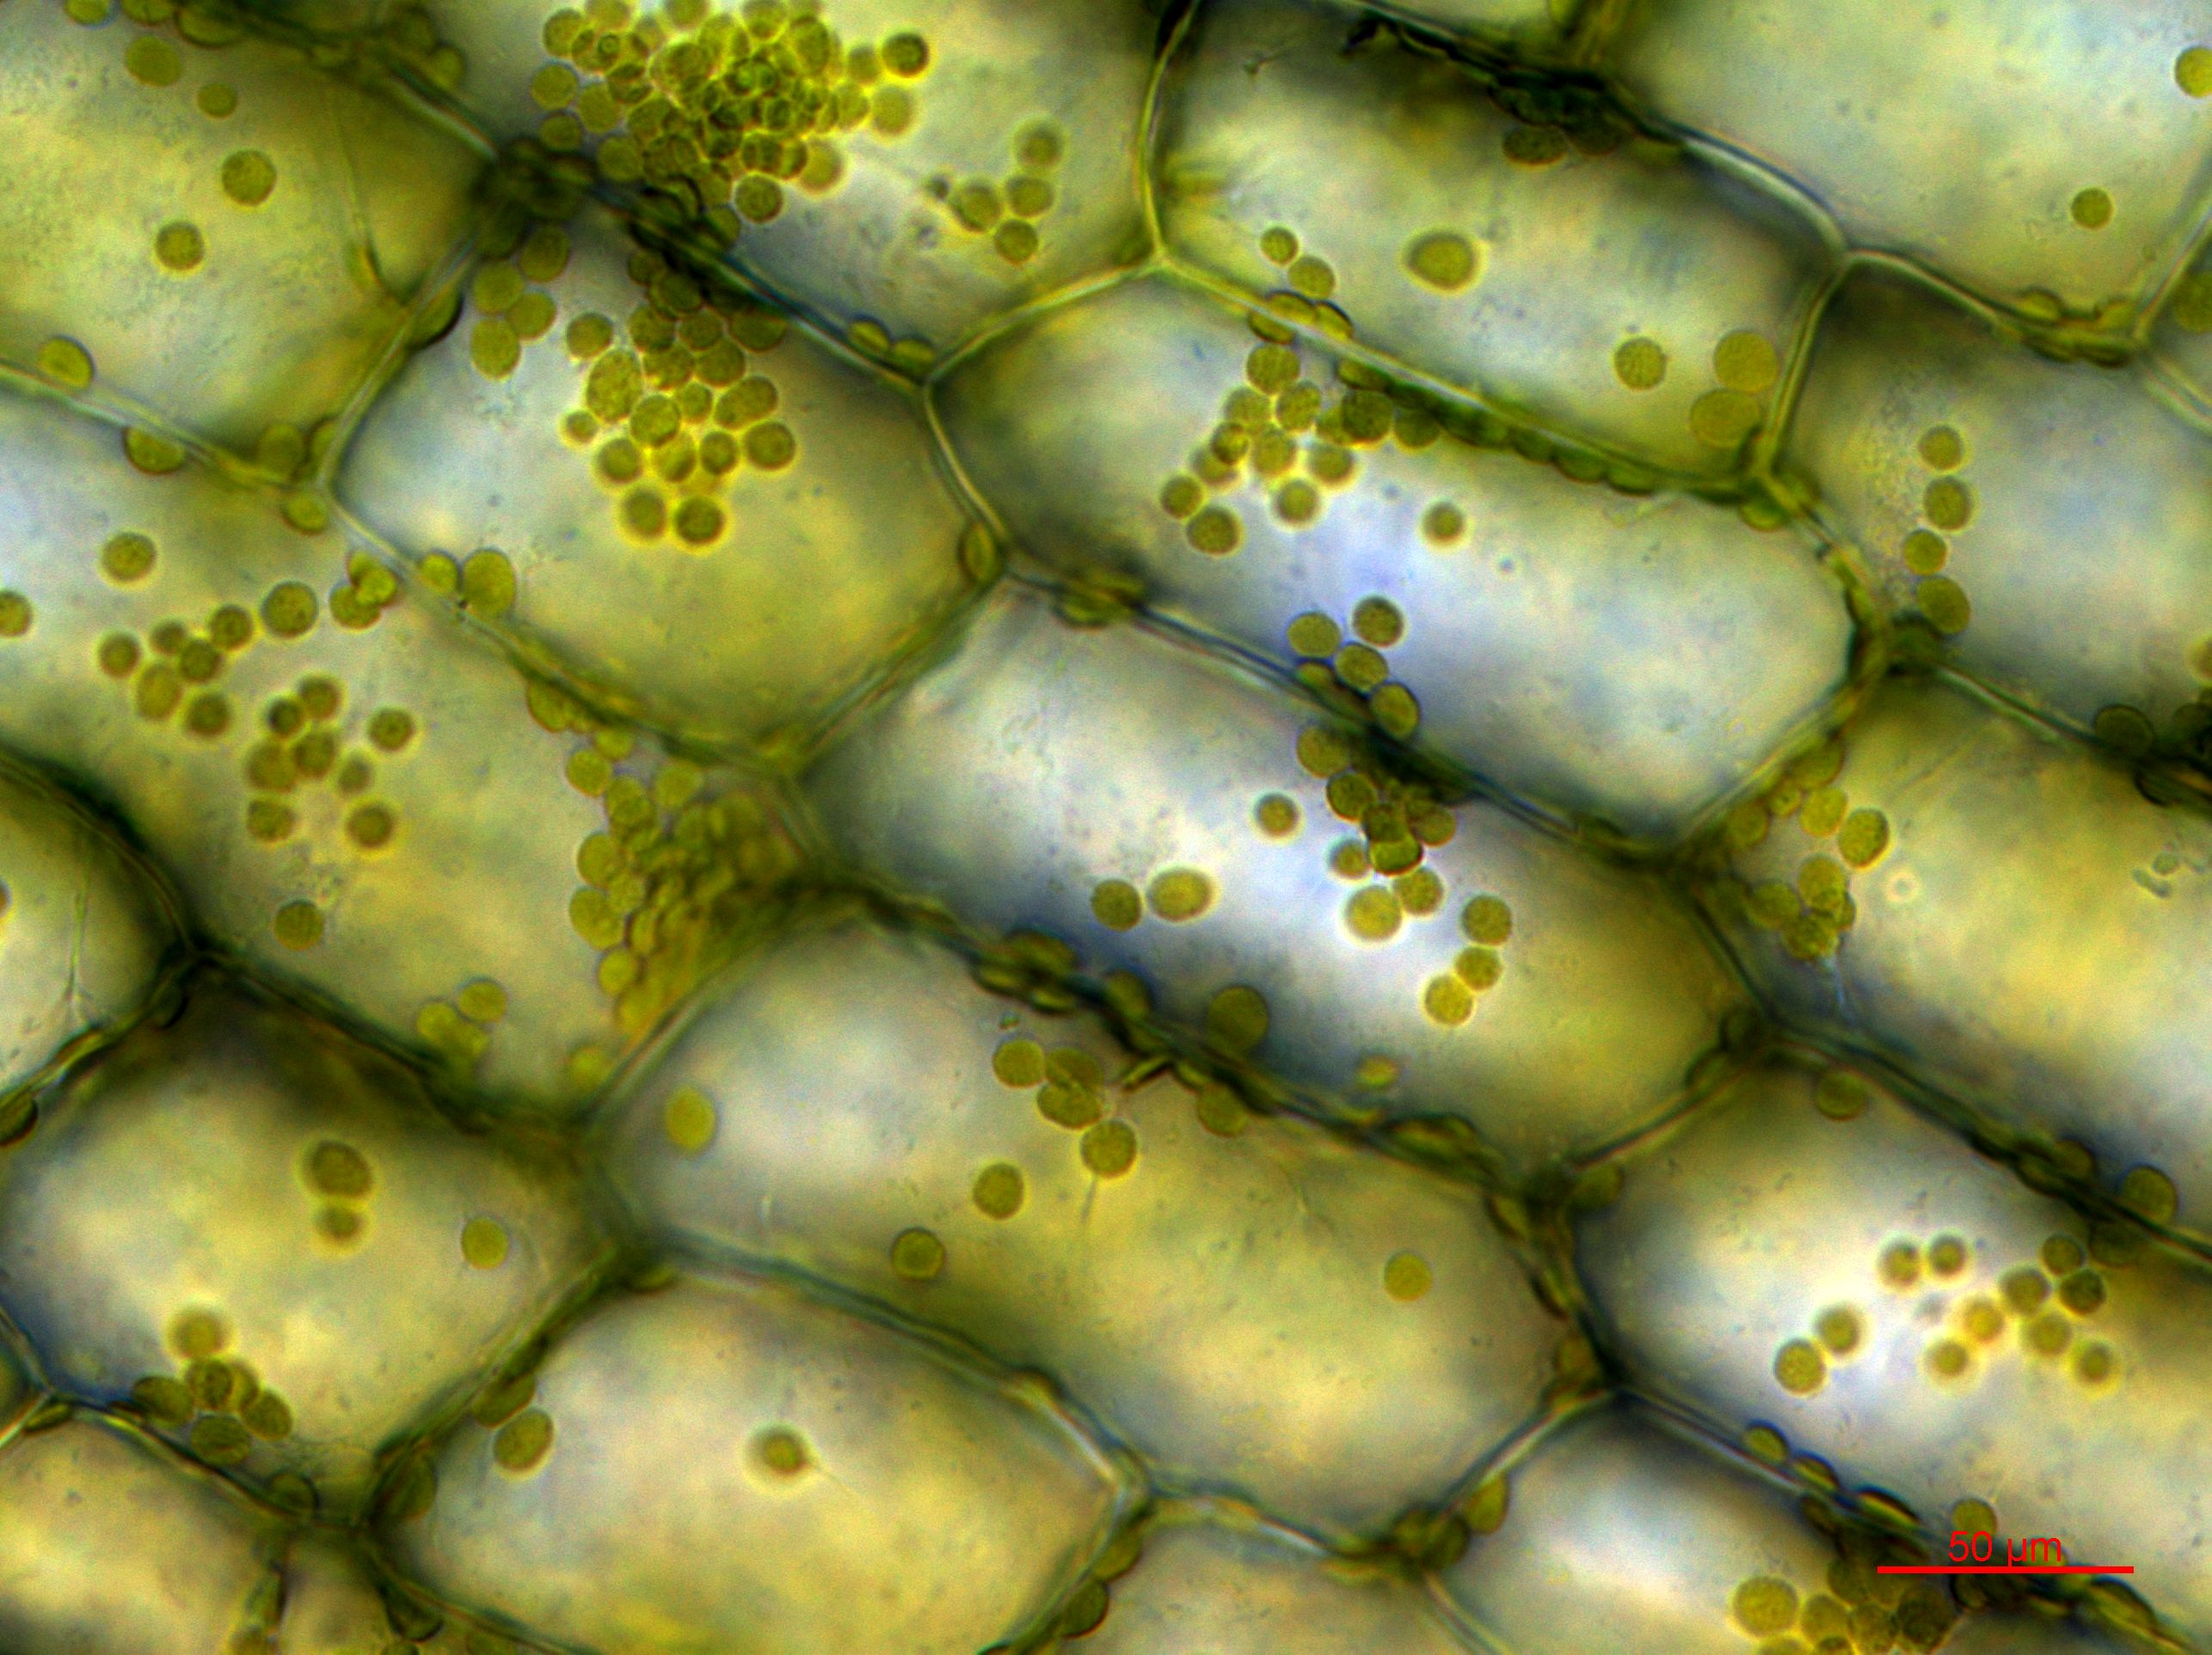 © Joachim Hehl (ETH Zurich) Chloroplast of the waterweed